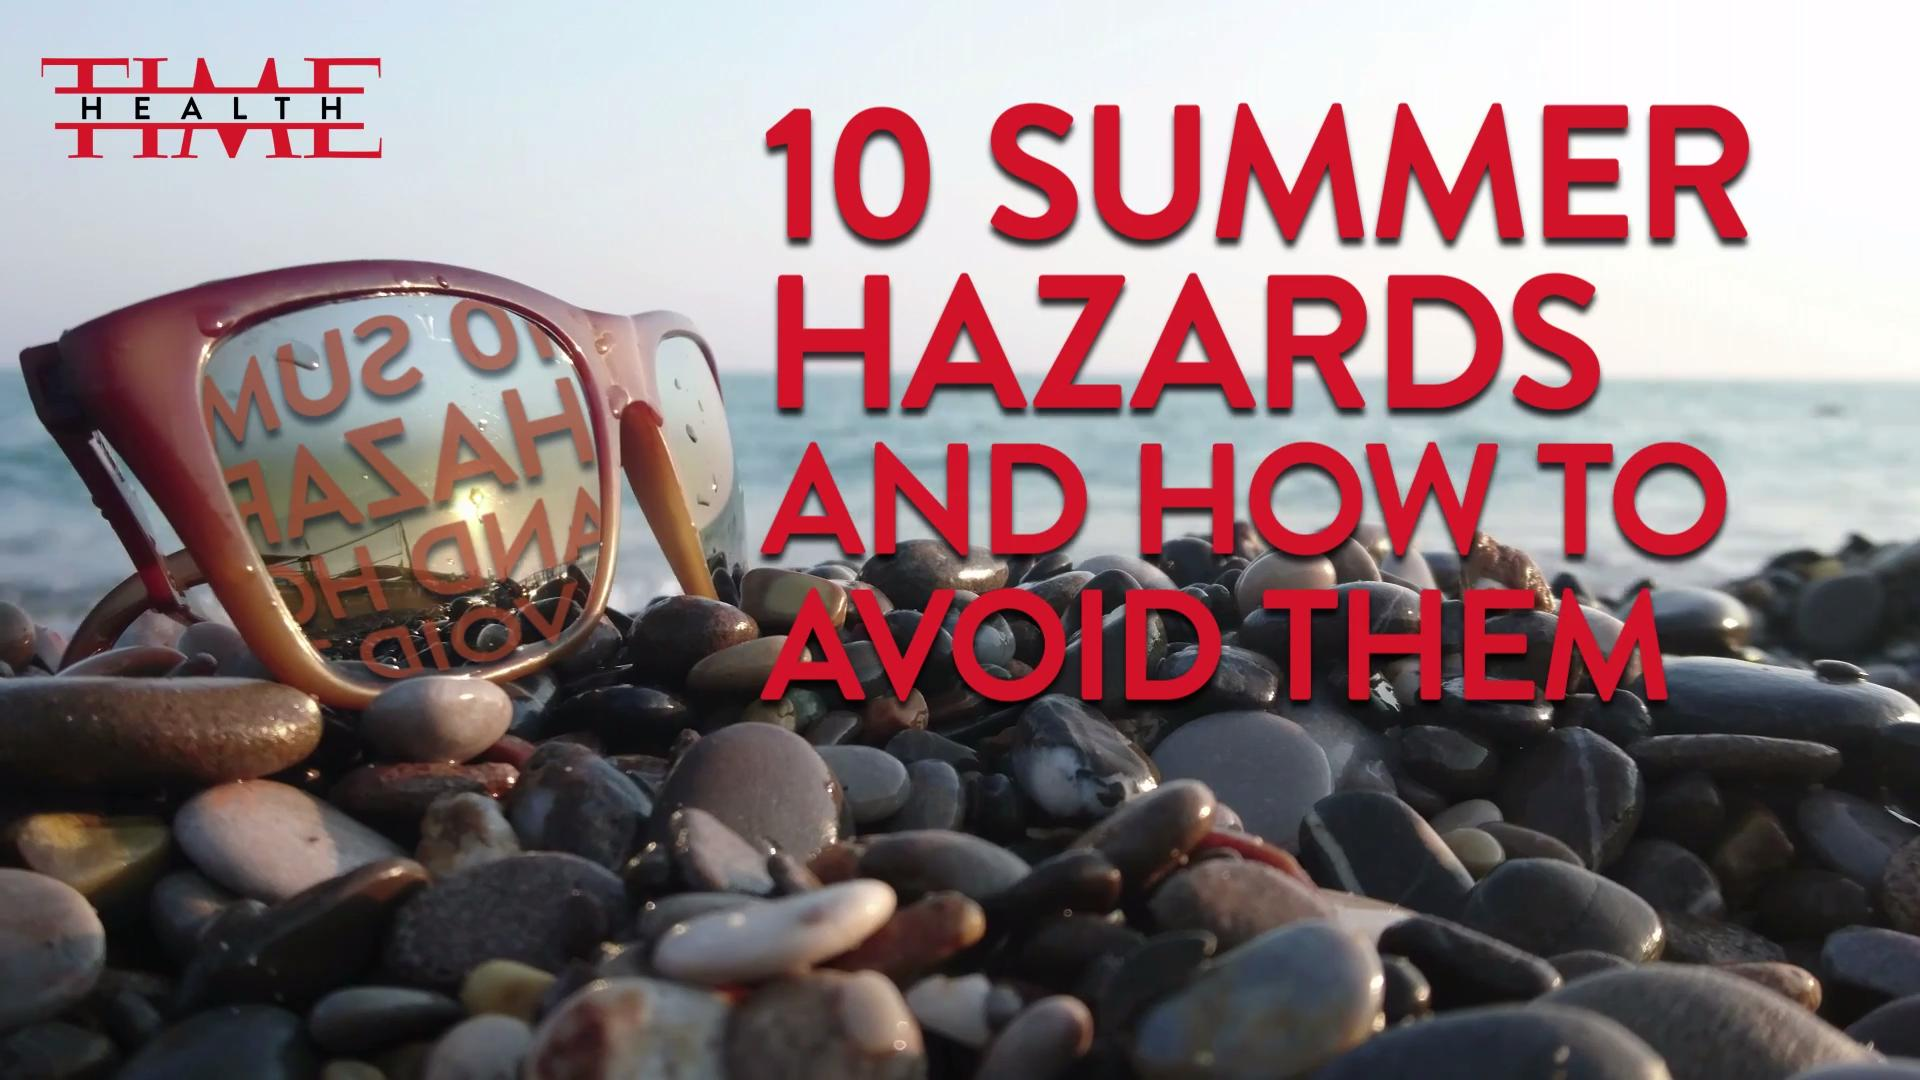 10 Summer Hazards And How To Avoid Them